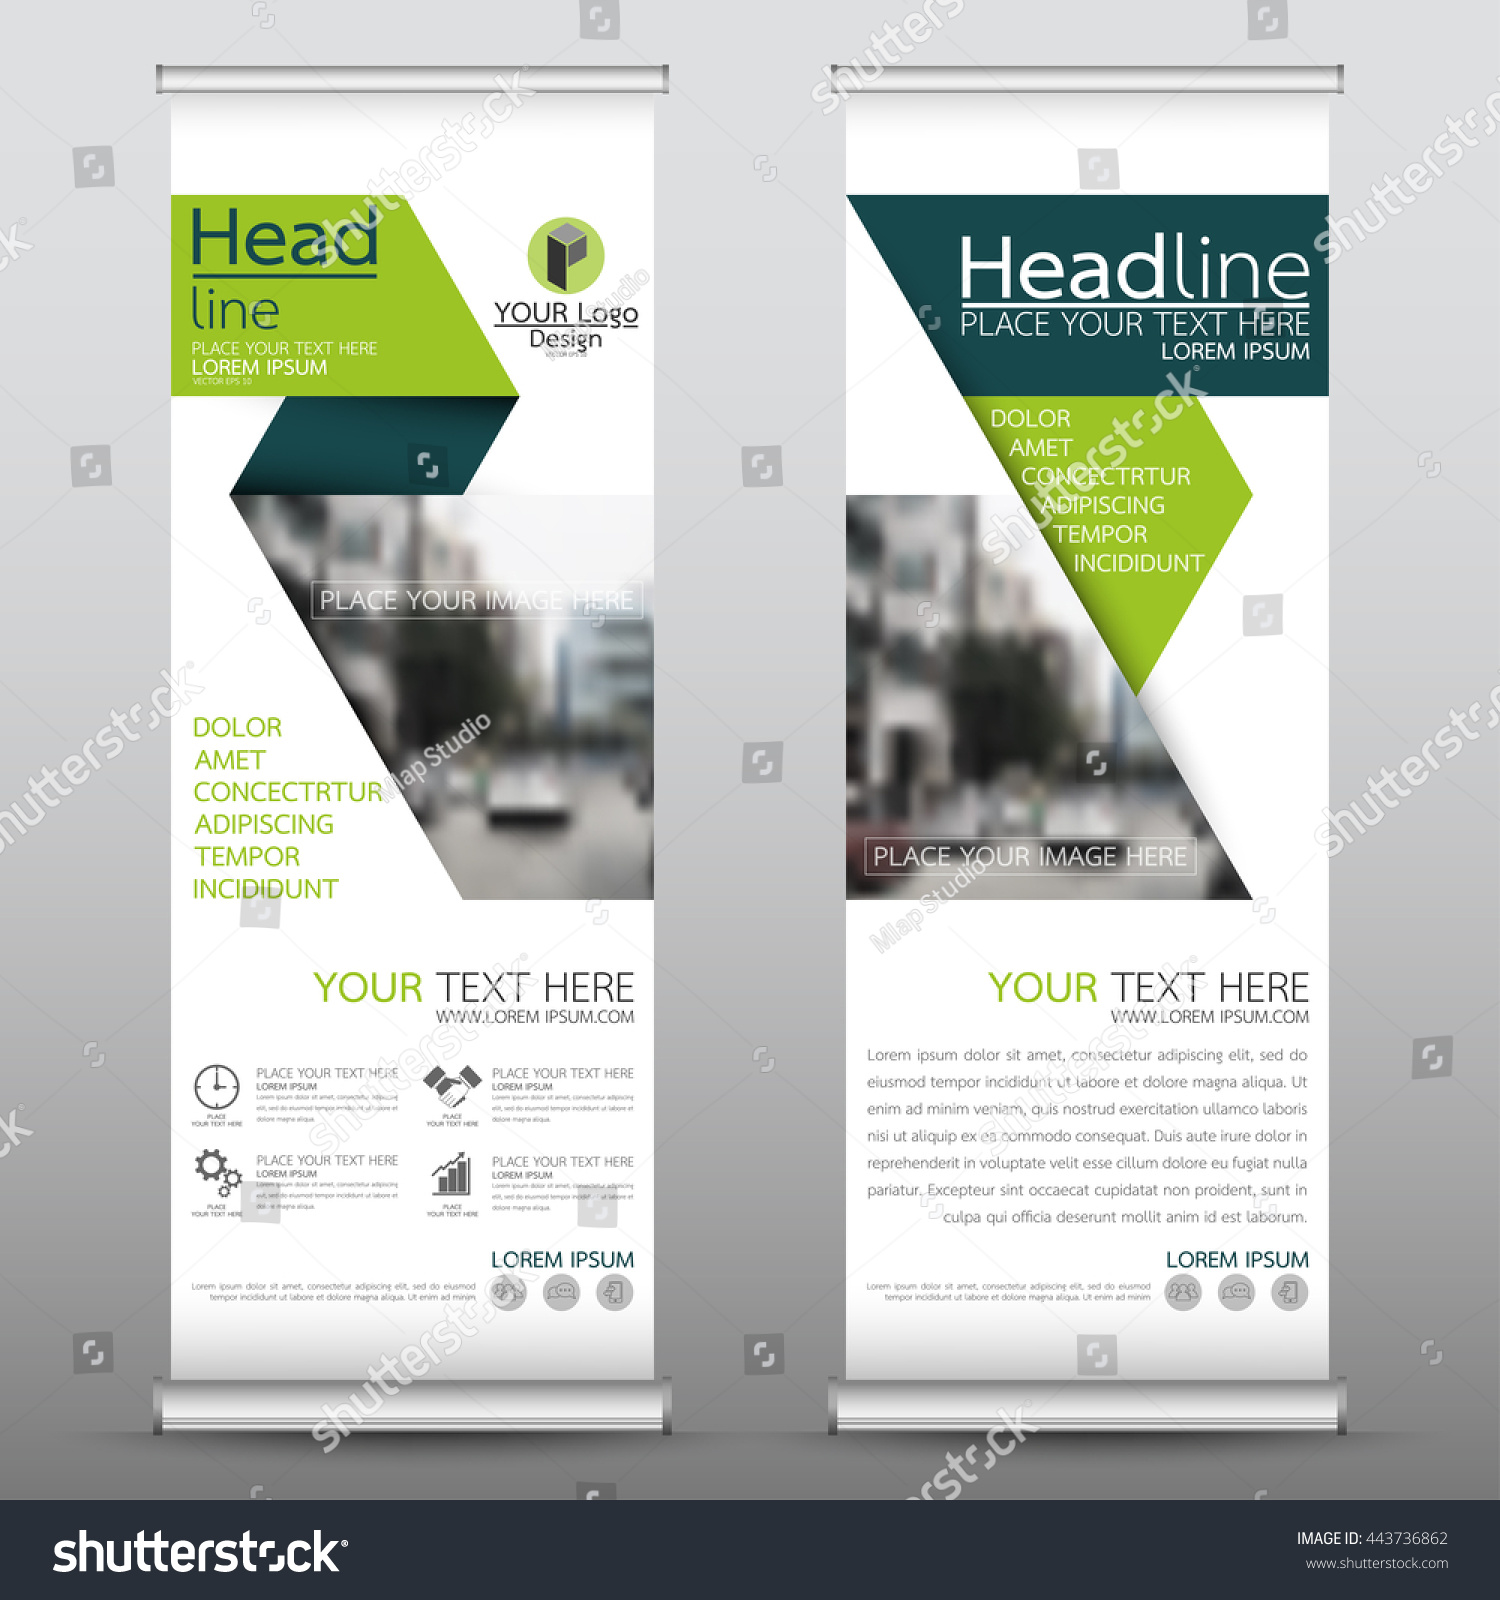 Green roll up business brochure flyer banner design vertical template - Green Roll Up Business Brochure Flyer Banner Design Template Vector Leaflet Cover Presentation Abstract Geometric